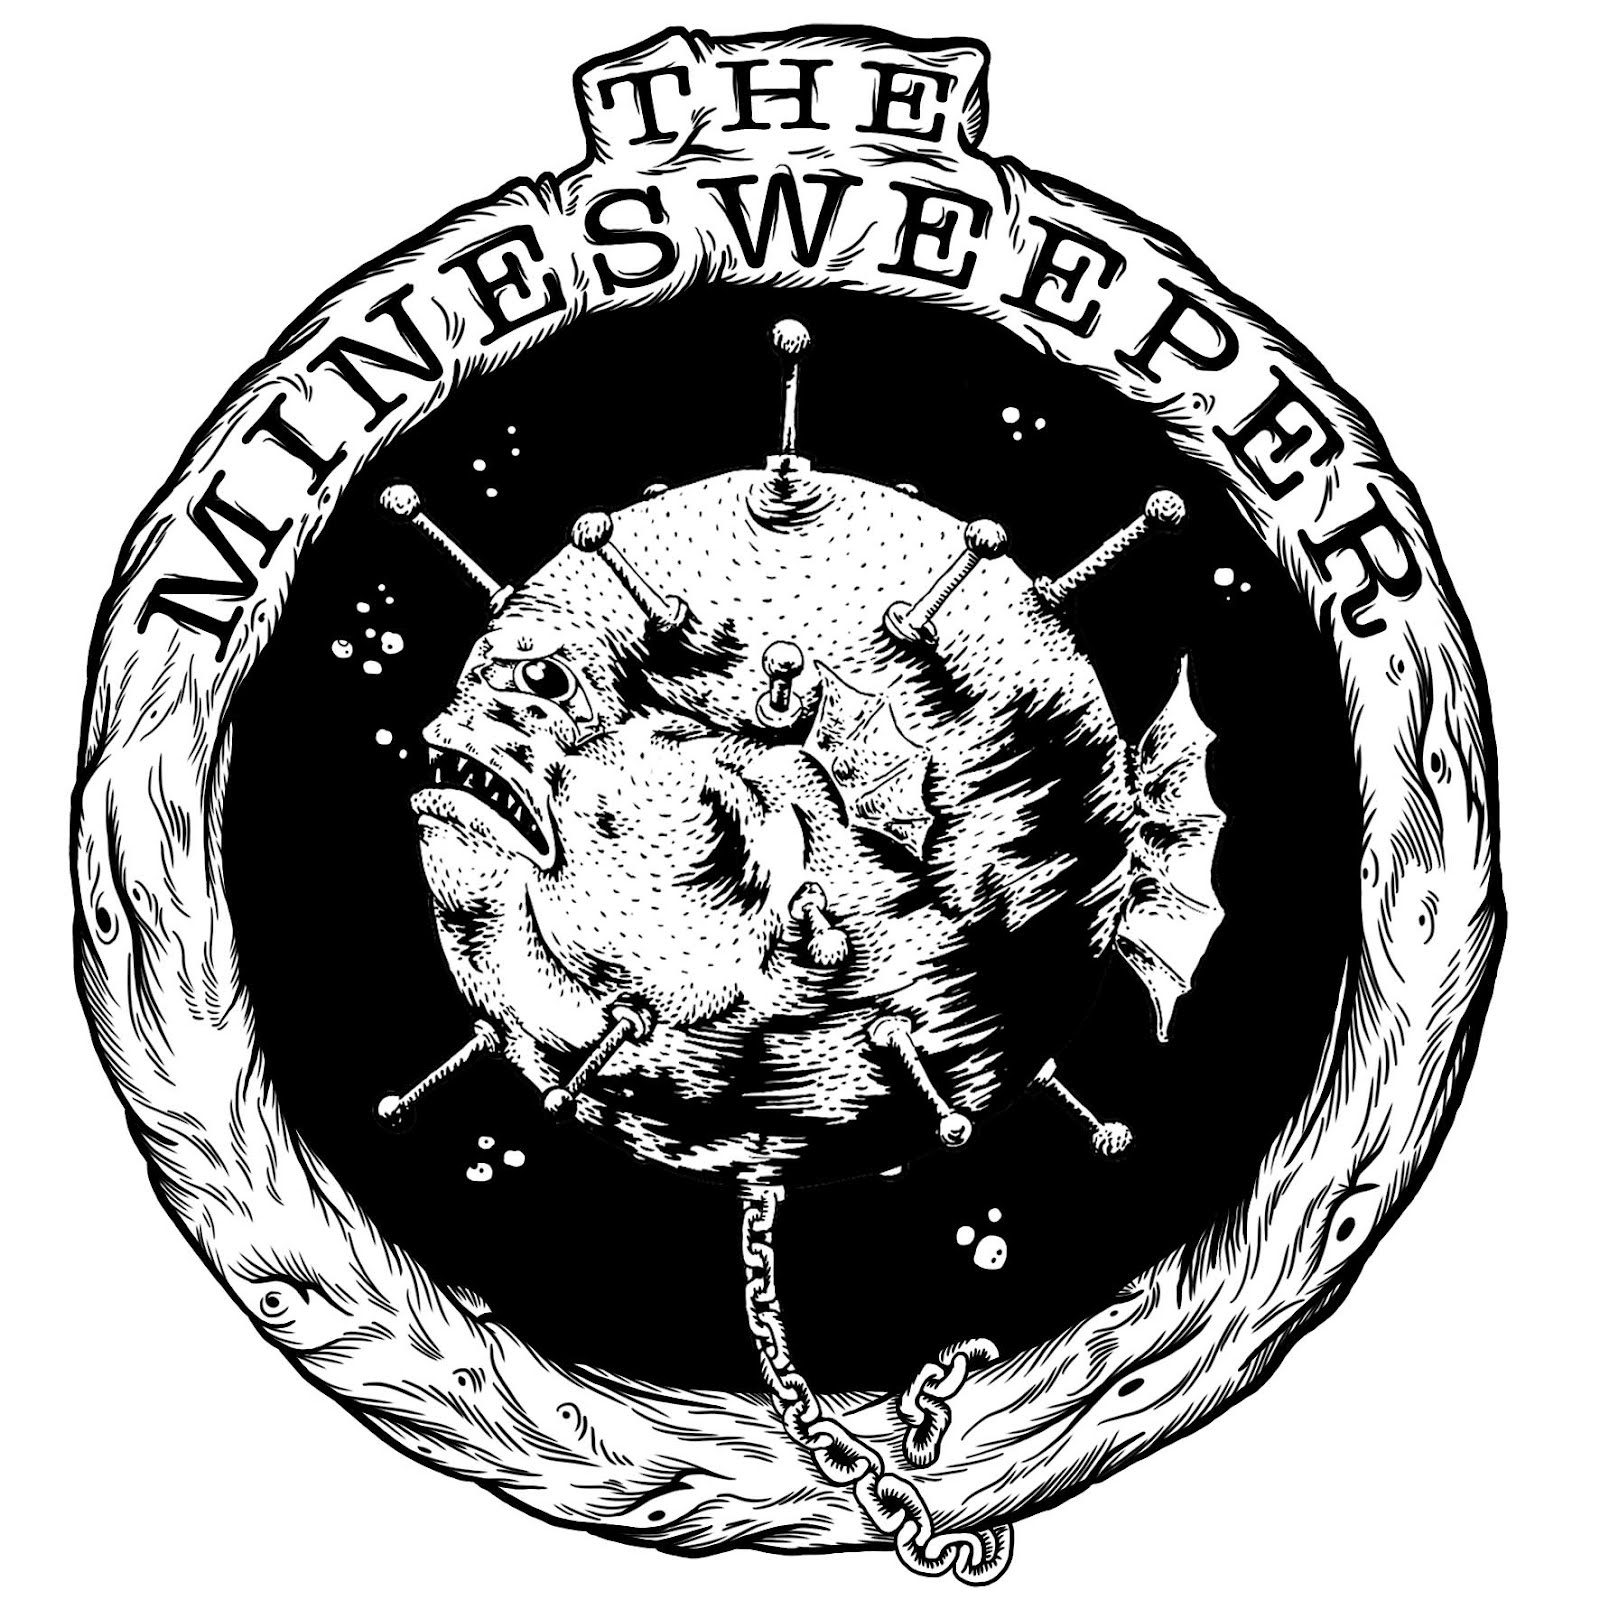 THE MINESWEEPER